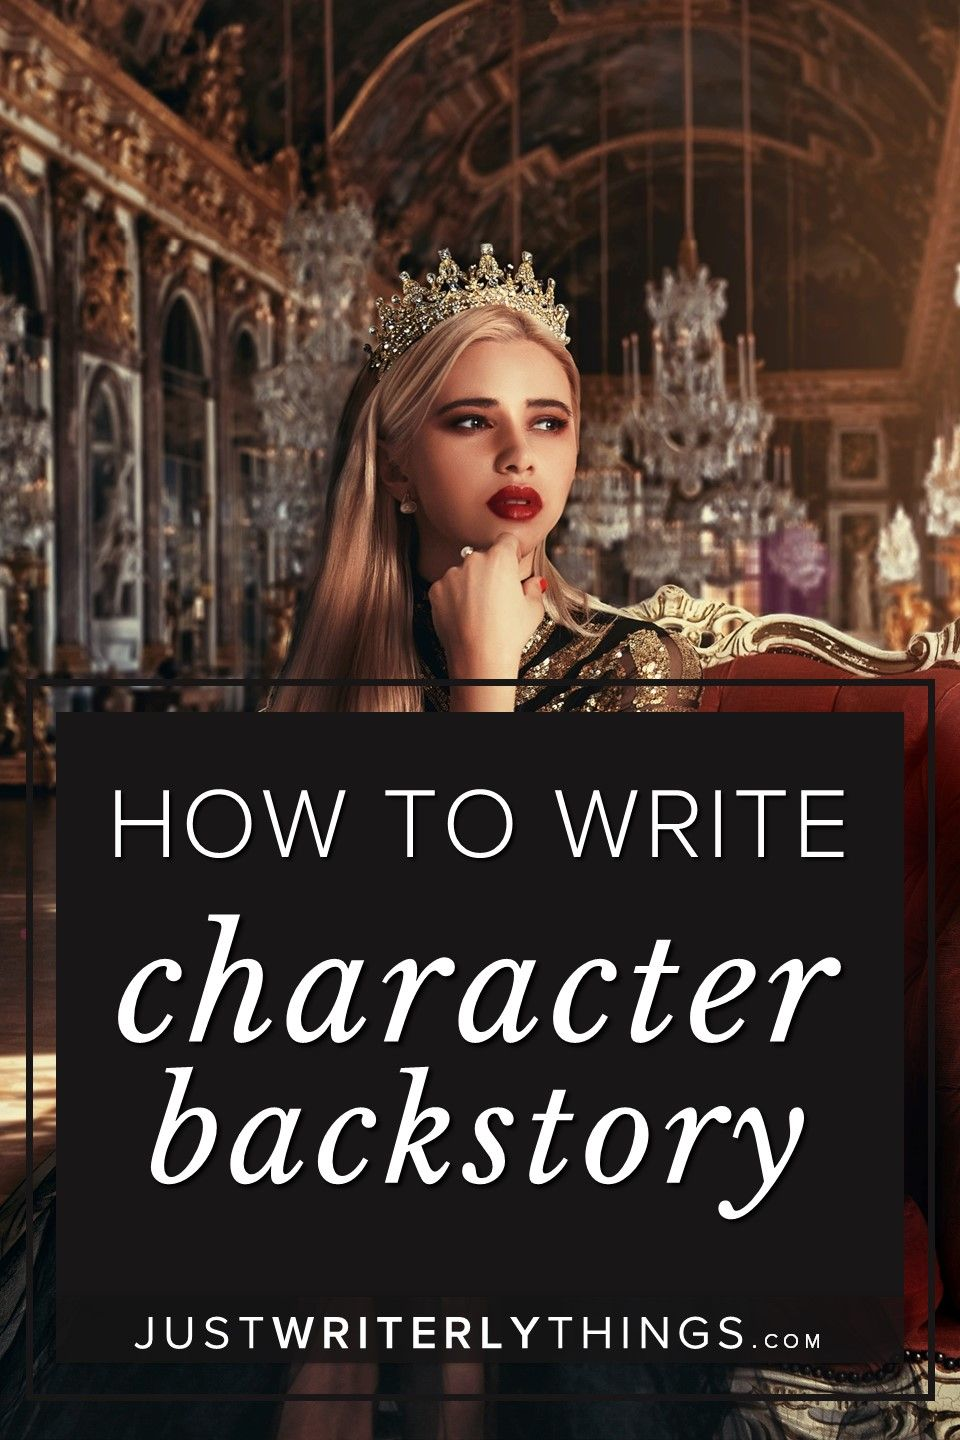 How to Write Character Backstory | Just Writerly Things